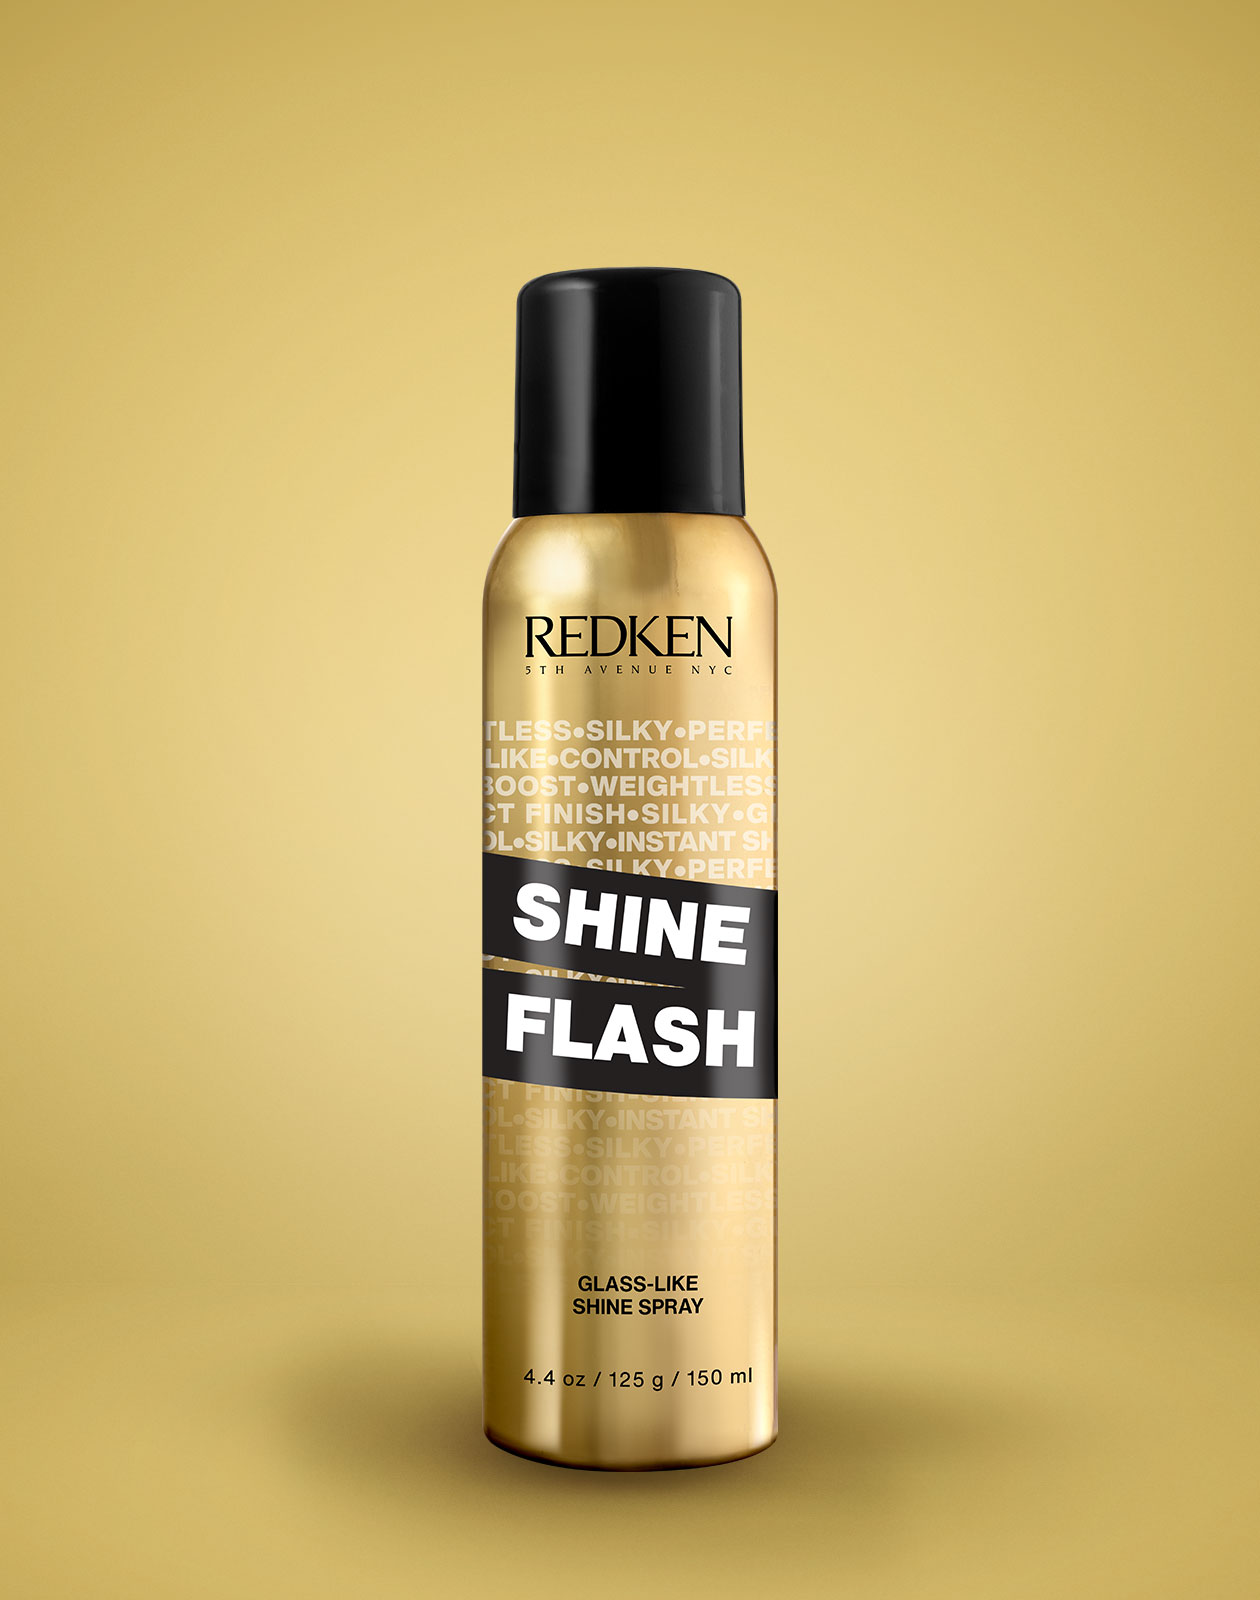 Redken-2020-Shine-Flash-Product-Shot-1260x1600